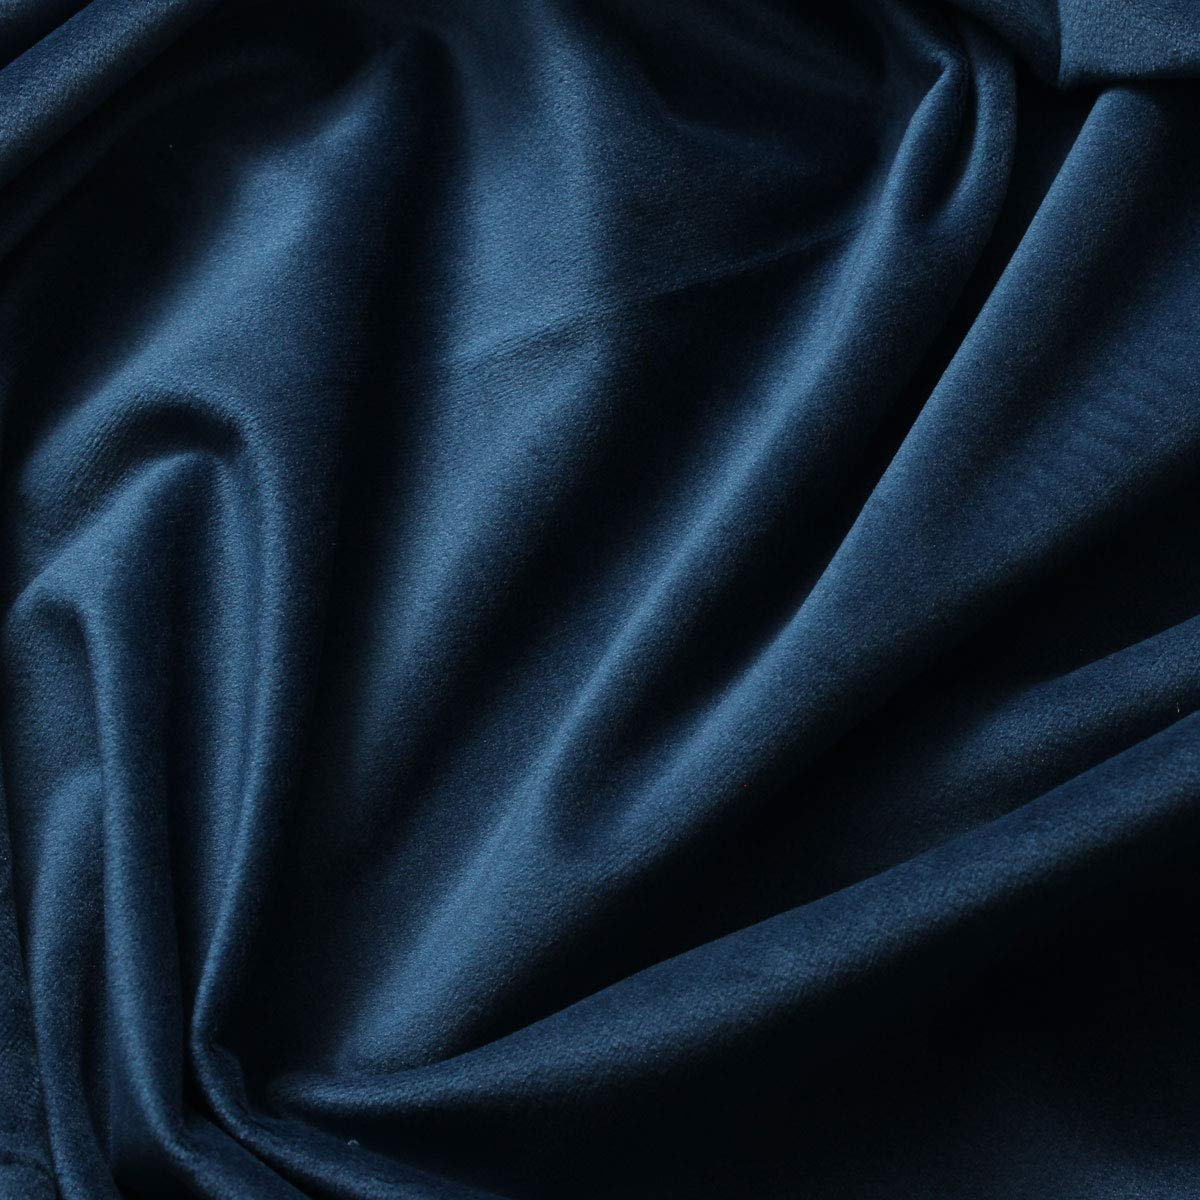 Prussian German Style Silky Velvet Home Fabric Textiles for Upholstery and Drapery 50 Colors Available Width = 60in